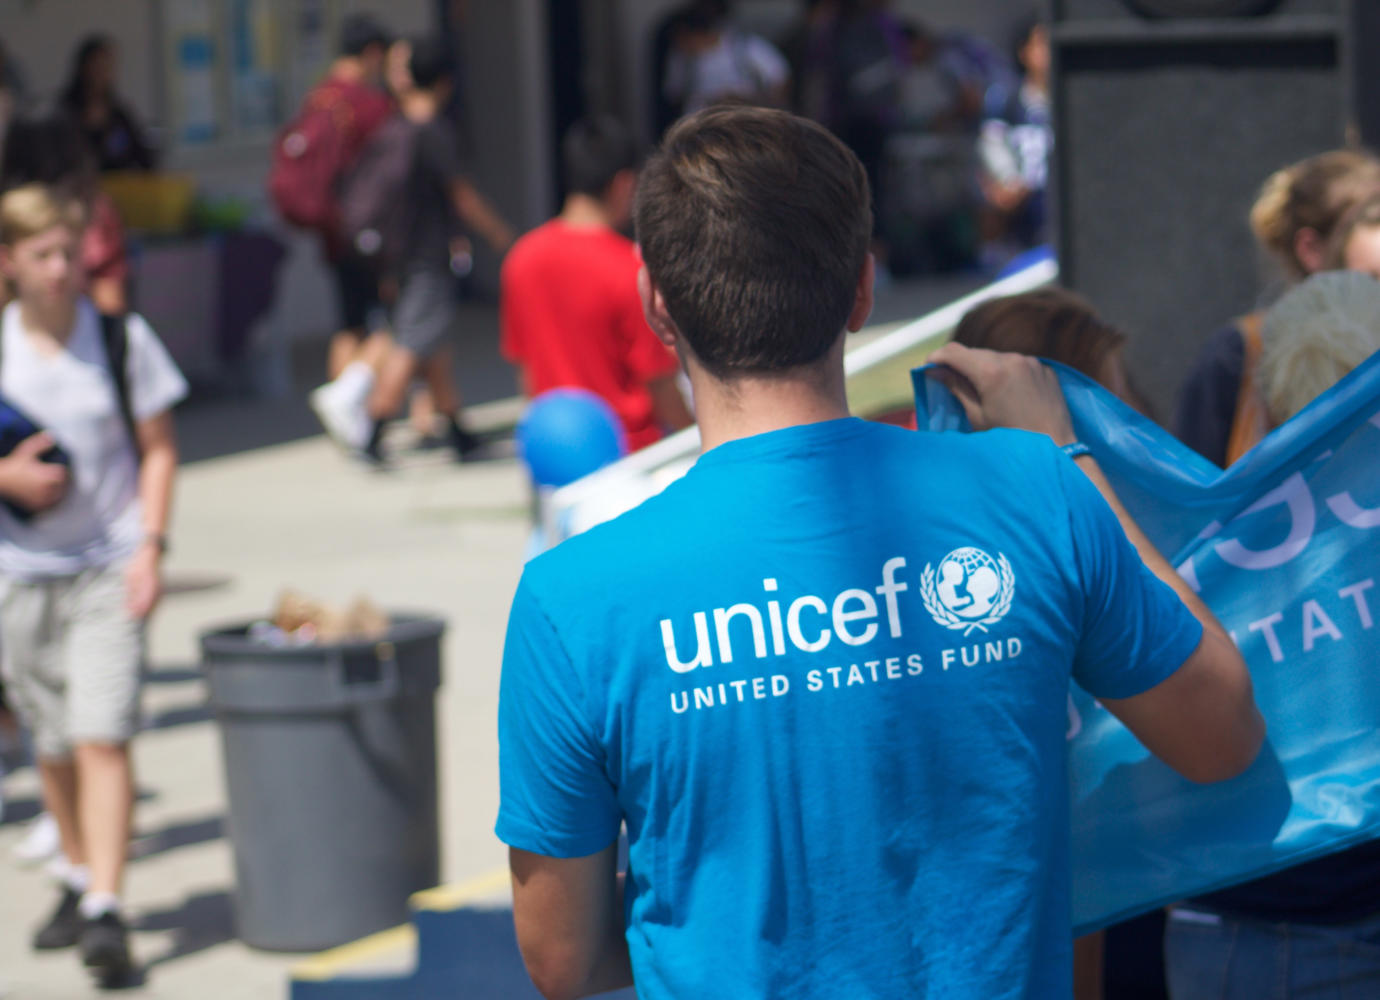 Unicef wanders around Club Rush in search of new members.